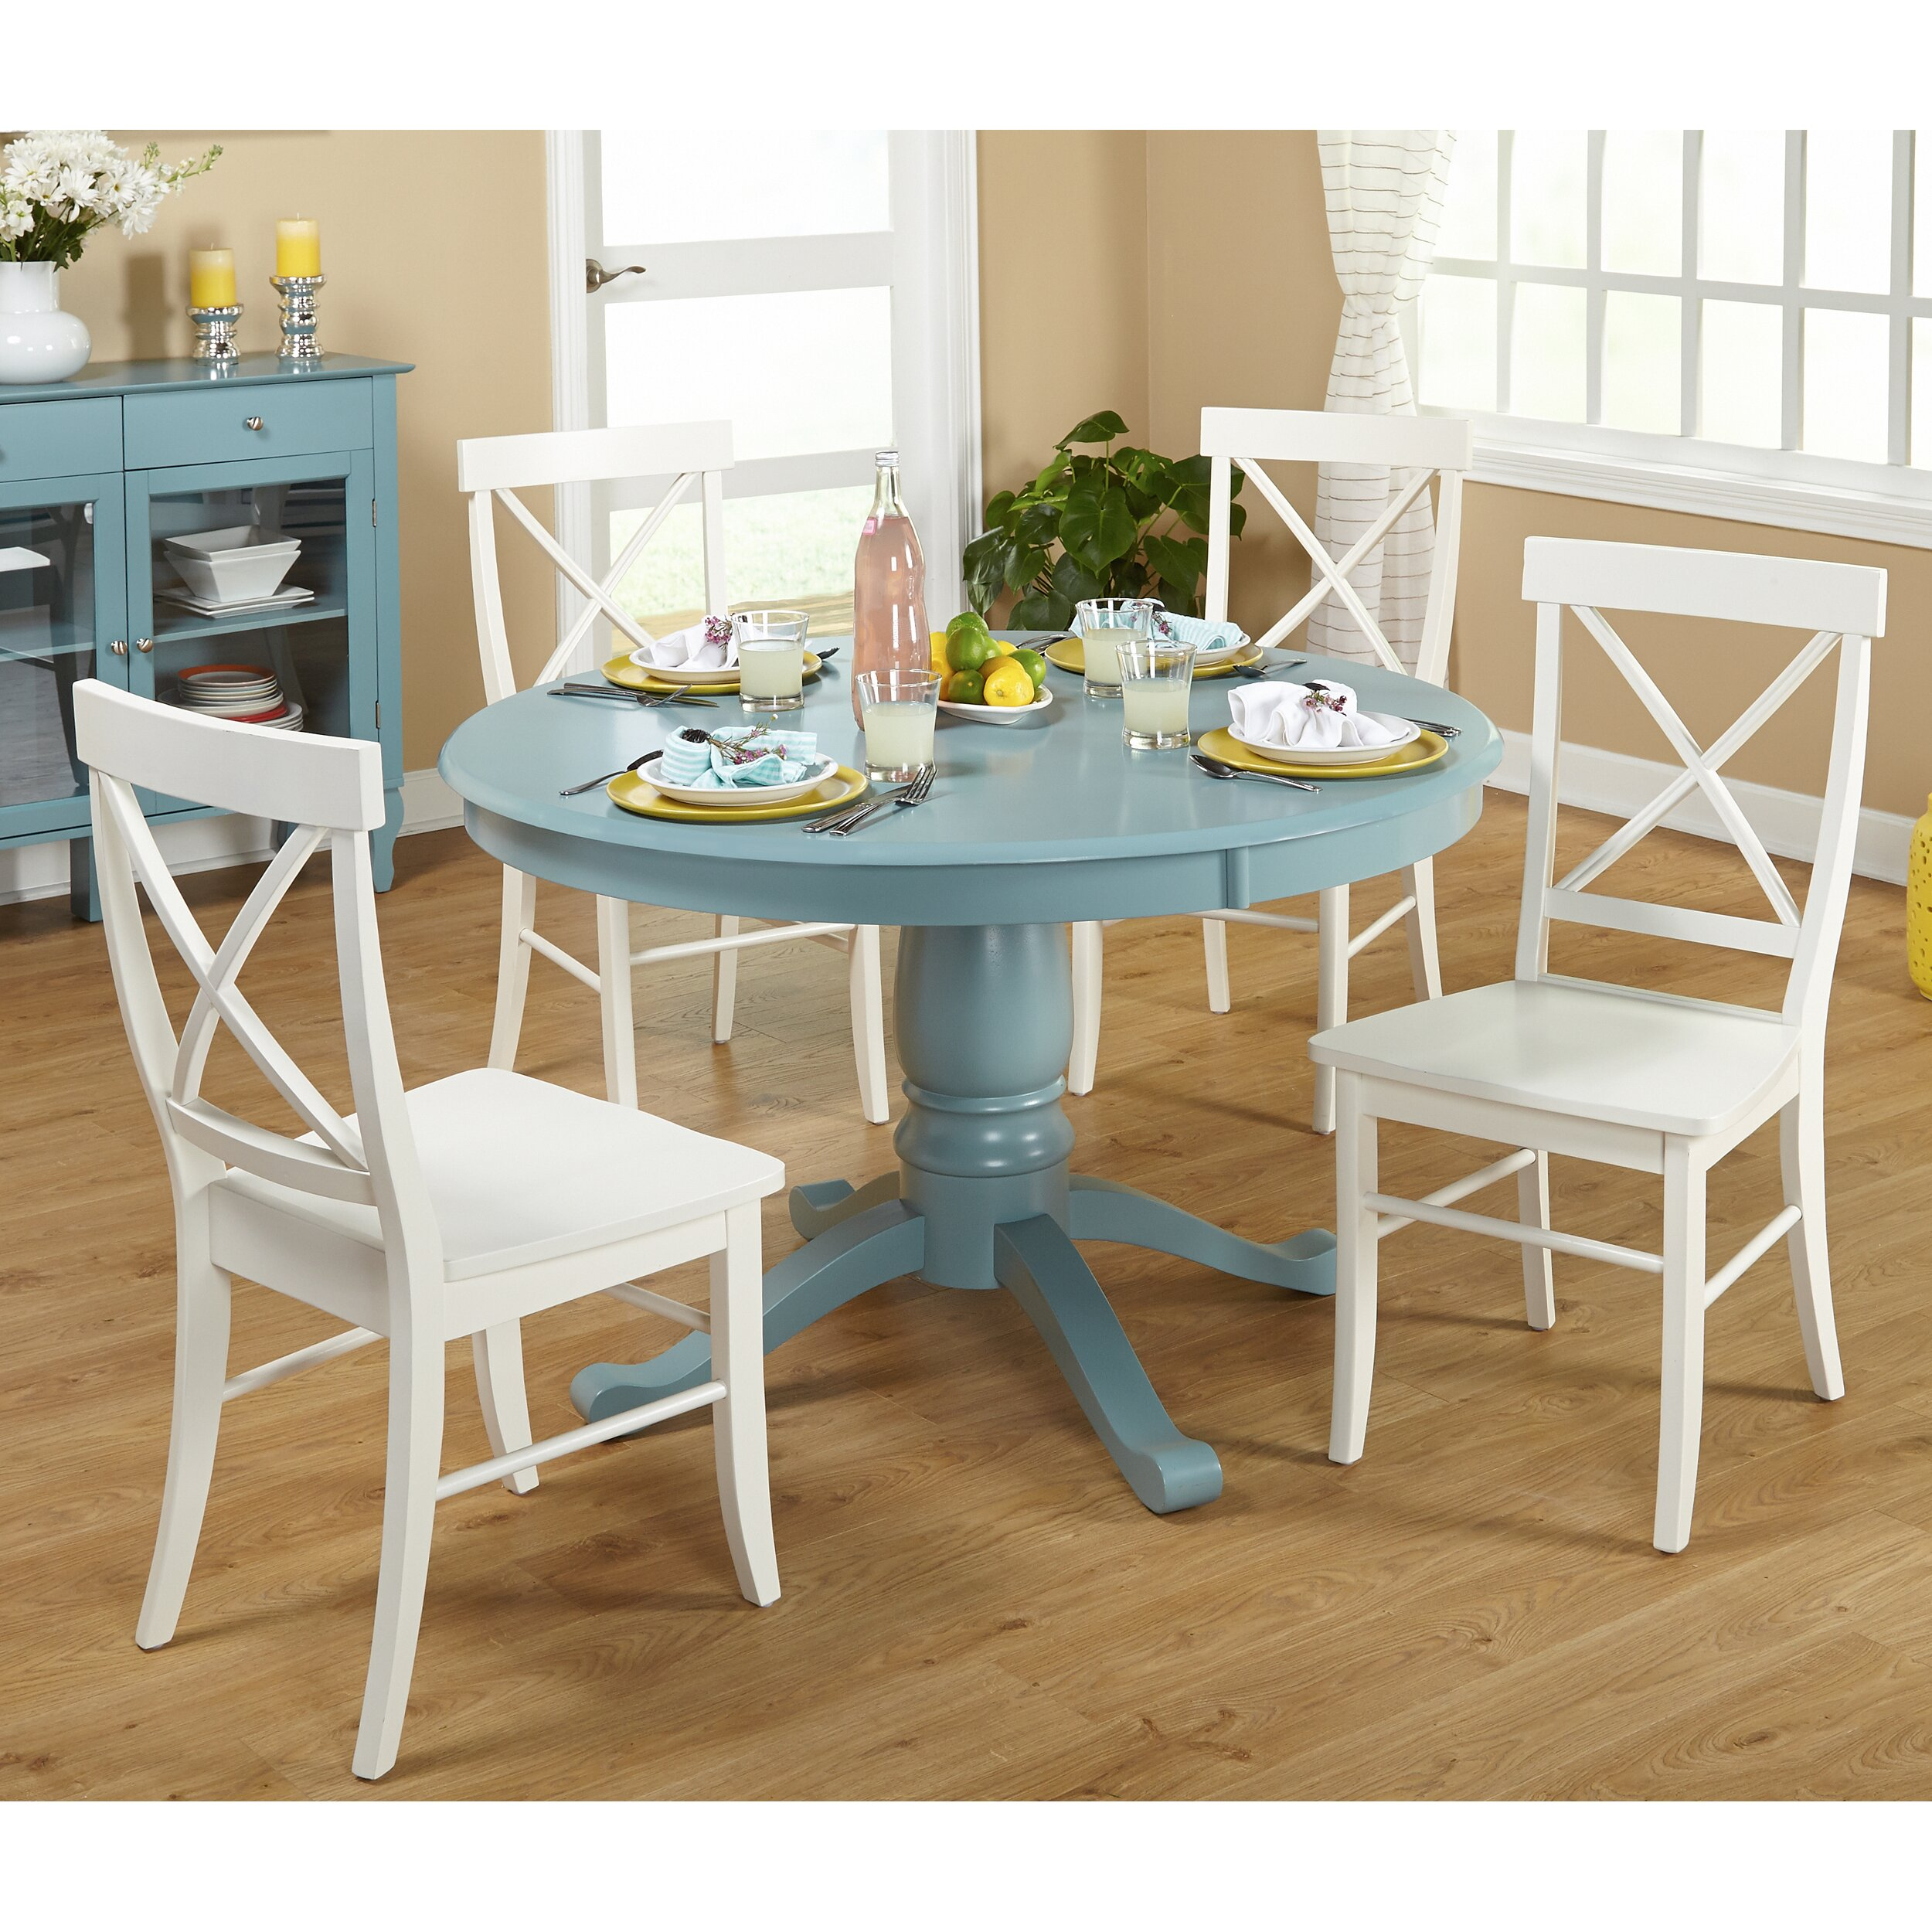 Beachcrest Home Stock Island 5 Piece Pedestal Dining Set